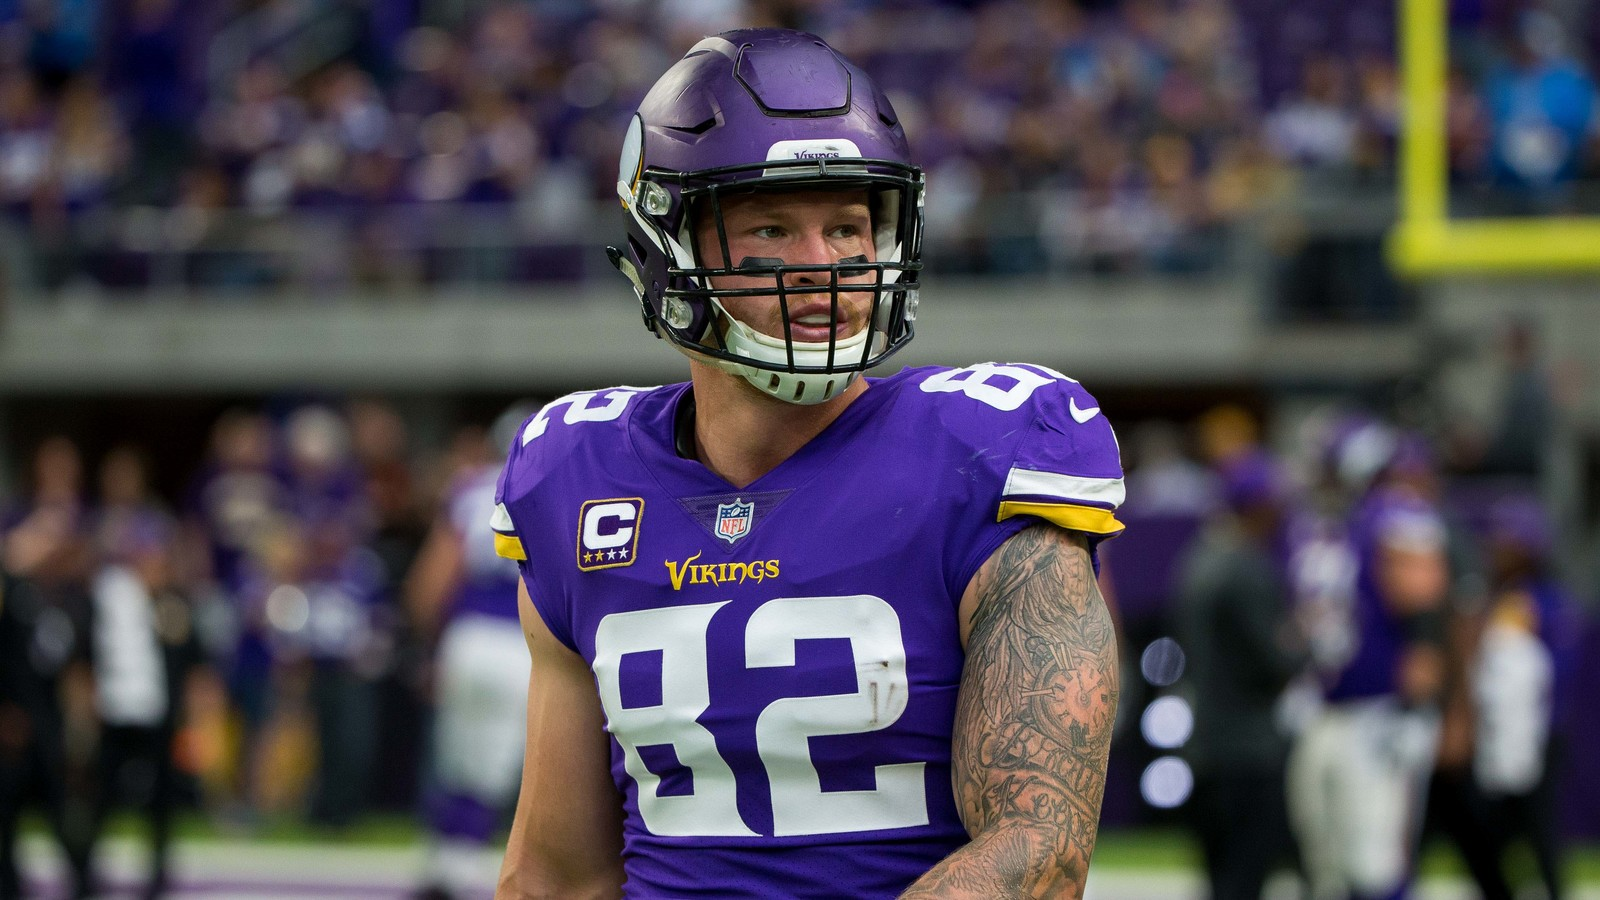 Vikings-Bengals: Kyle Rudolph upgraded to questionable